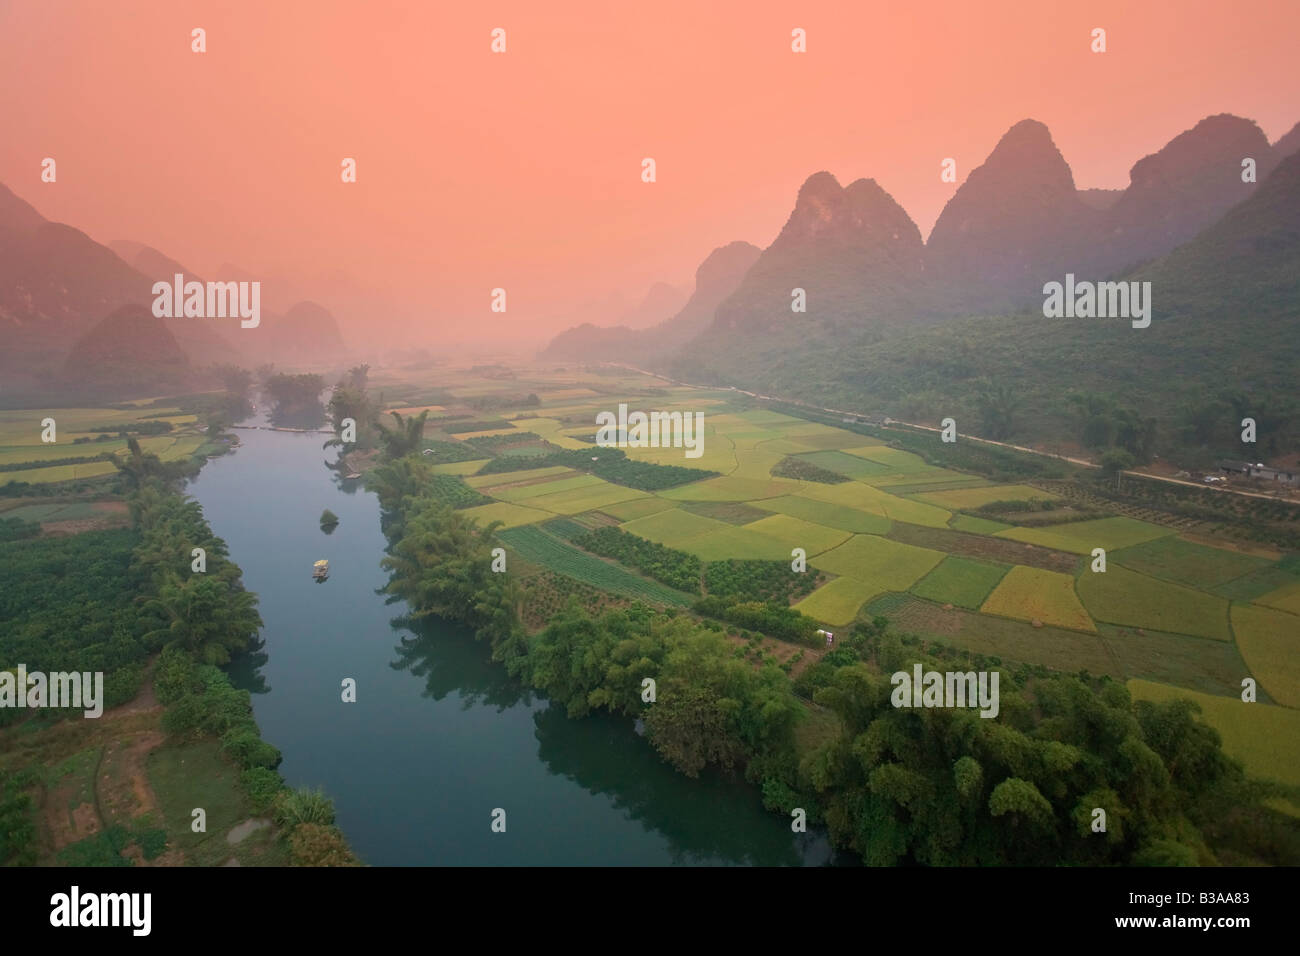 Karst Mountain Landscape & Li River from hot air balloon, Yangshuo, Guilin, Guangxi Province, China Stock Photo